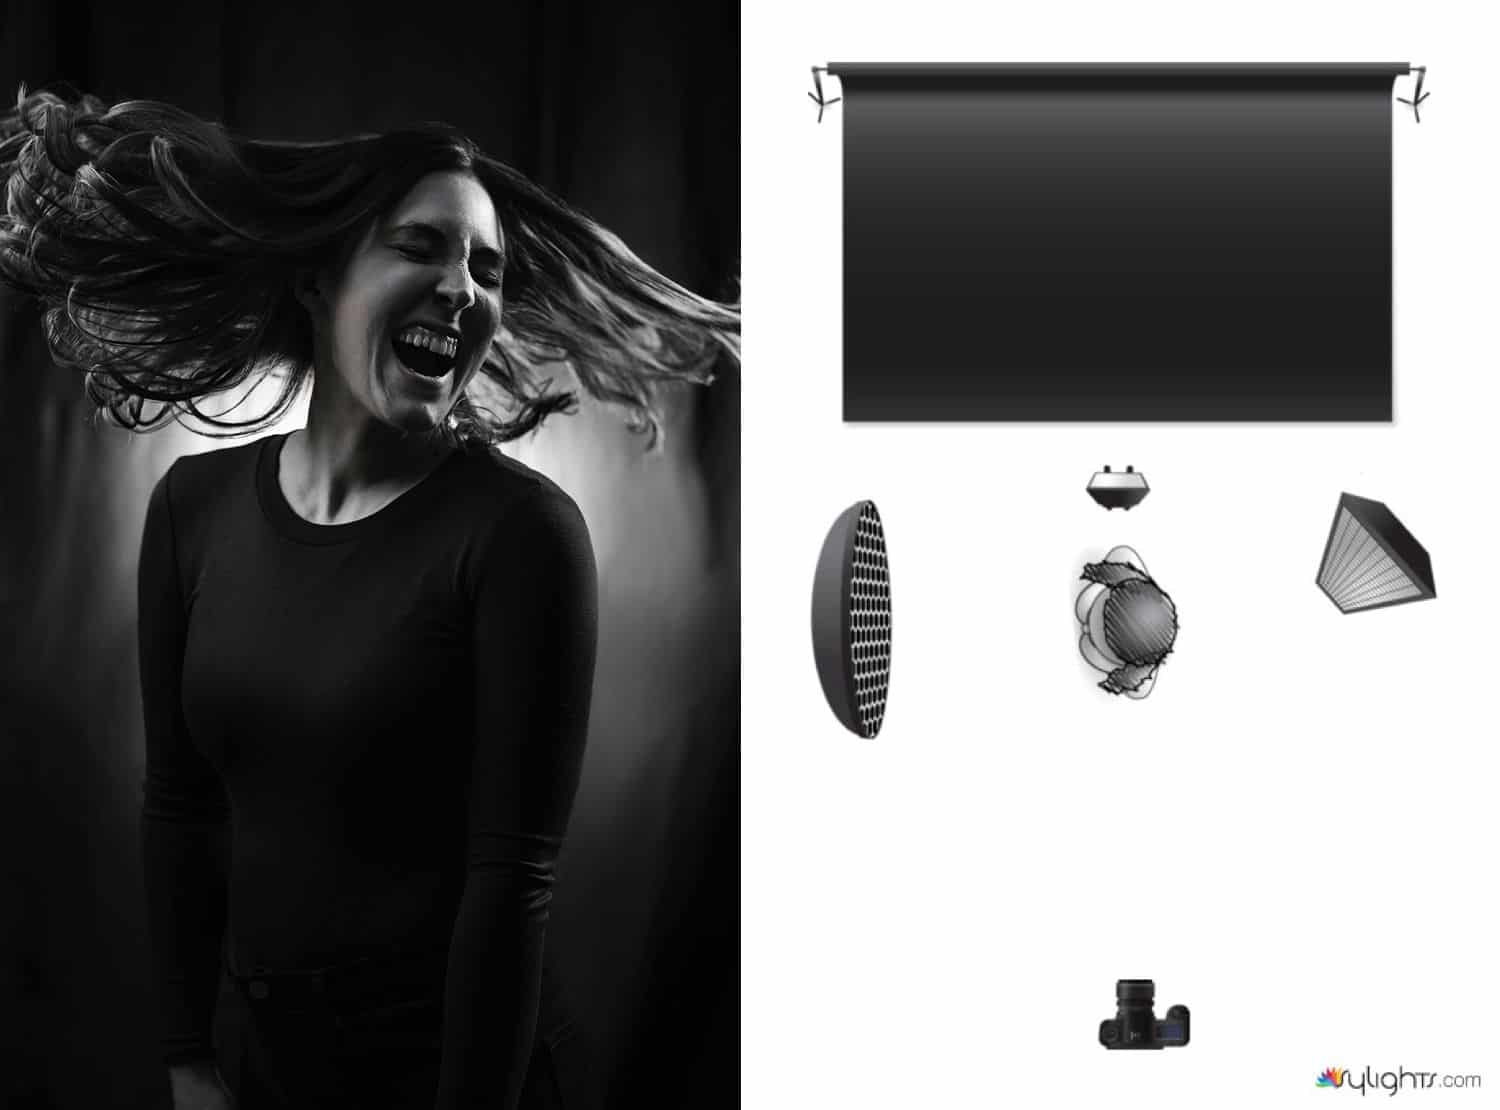 A detailed diagram shows you how to make a beautiful black and white studio portrait using a background light and rim lighting.